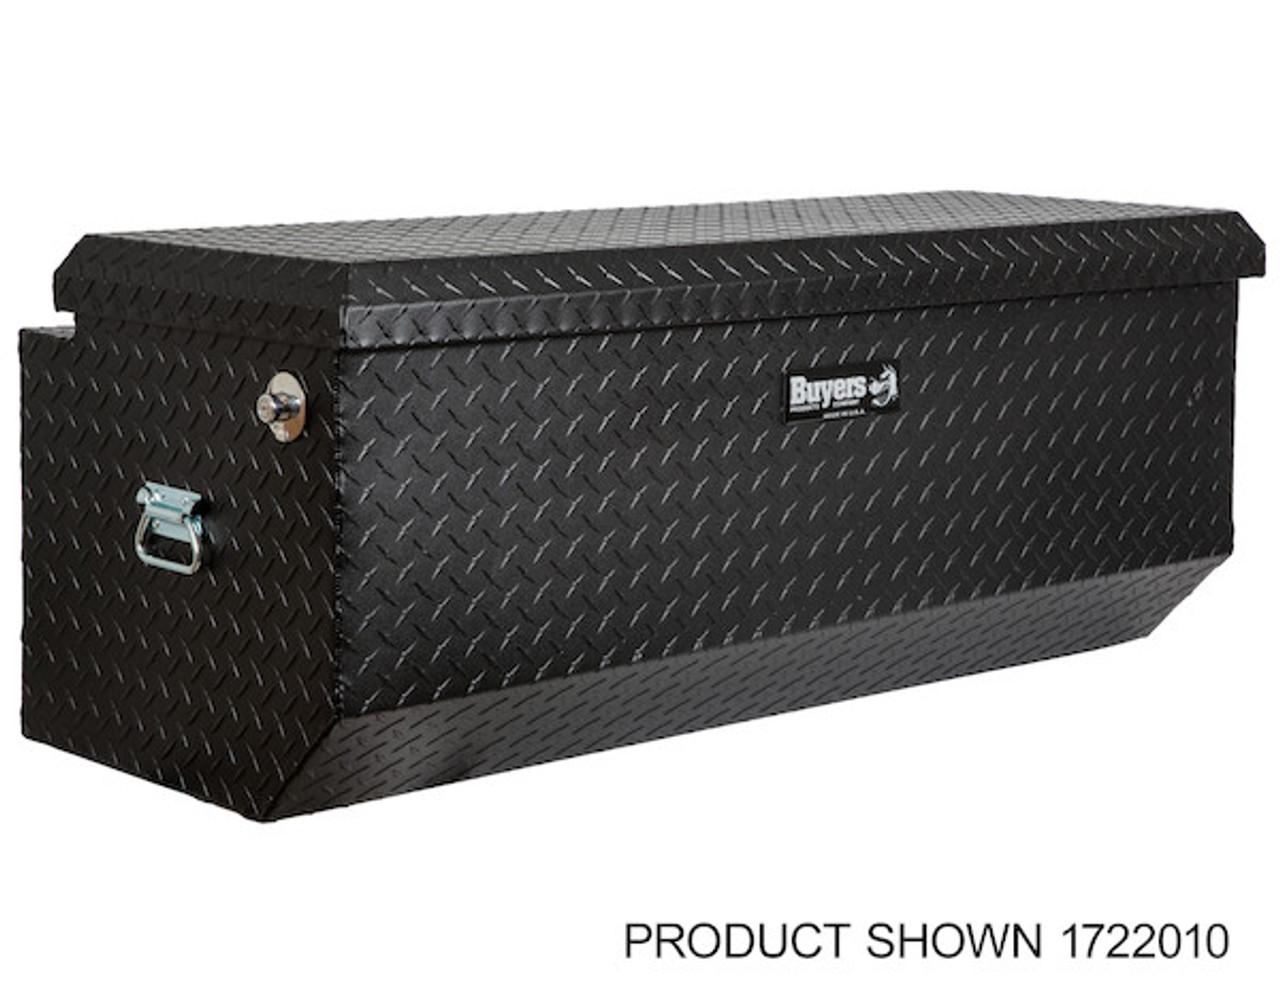 """1722010 BUYERS PRODUCTS TEXTURED MATTE BLACK DIAMOND TREAD ALUMINUM ALL-PURPOSE TOOLBOX WITH ANGLED BASE 19""""HX20""""DX47""""W Picture # 1"""